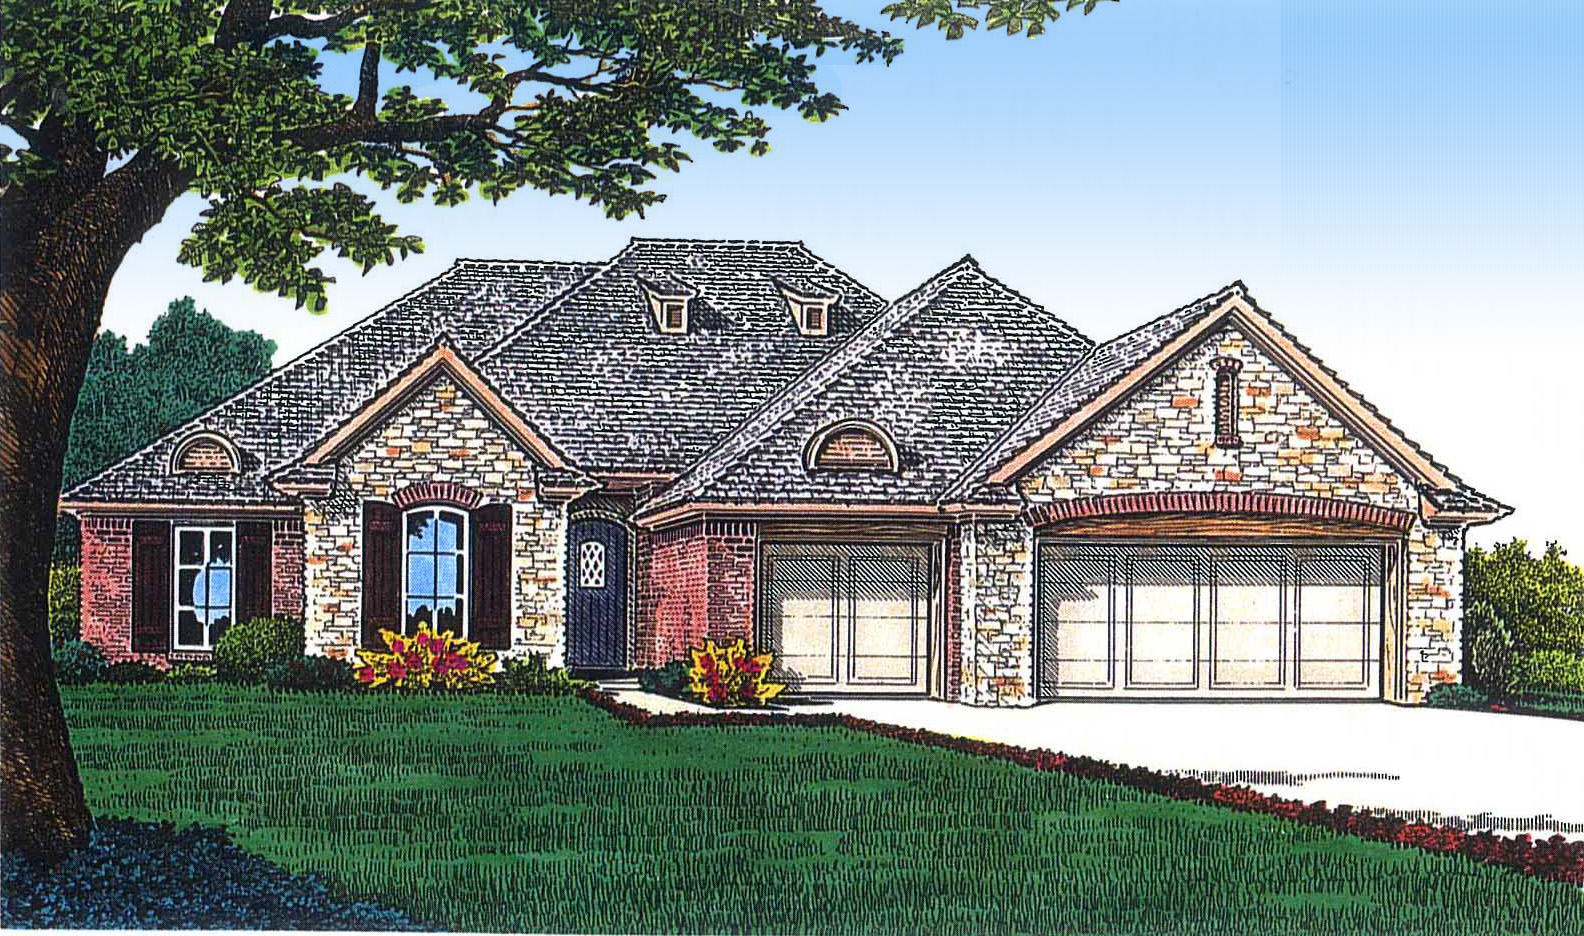 Manageable size 48347fm architectural designs house for Architecturaldesigns com house plan 56364sm asp